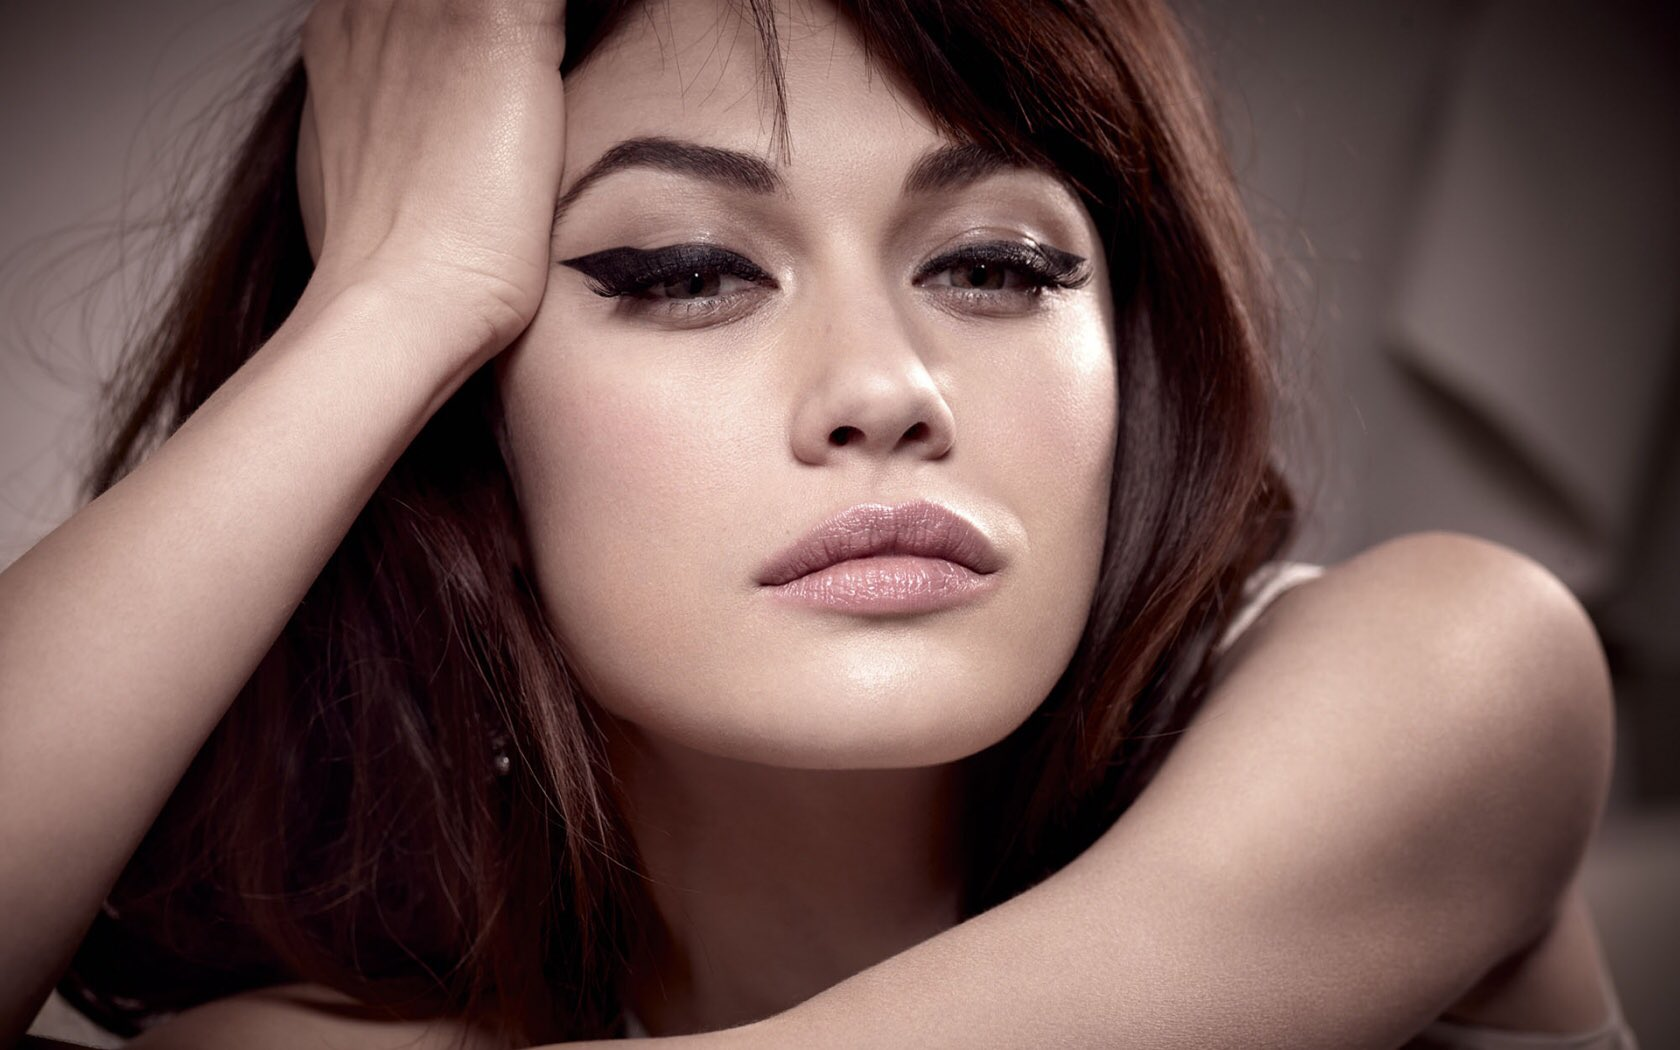 We wish a very happy birthday to the gorgeous Olga Kurylenko! ¡Feliz cumpleaños